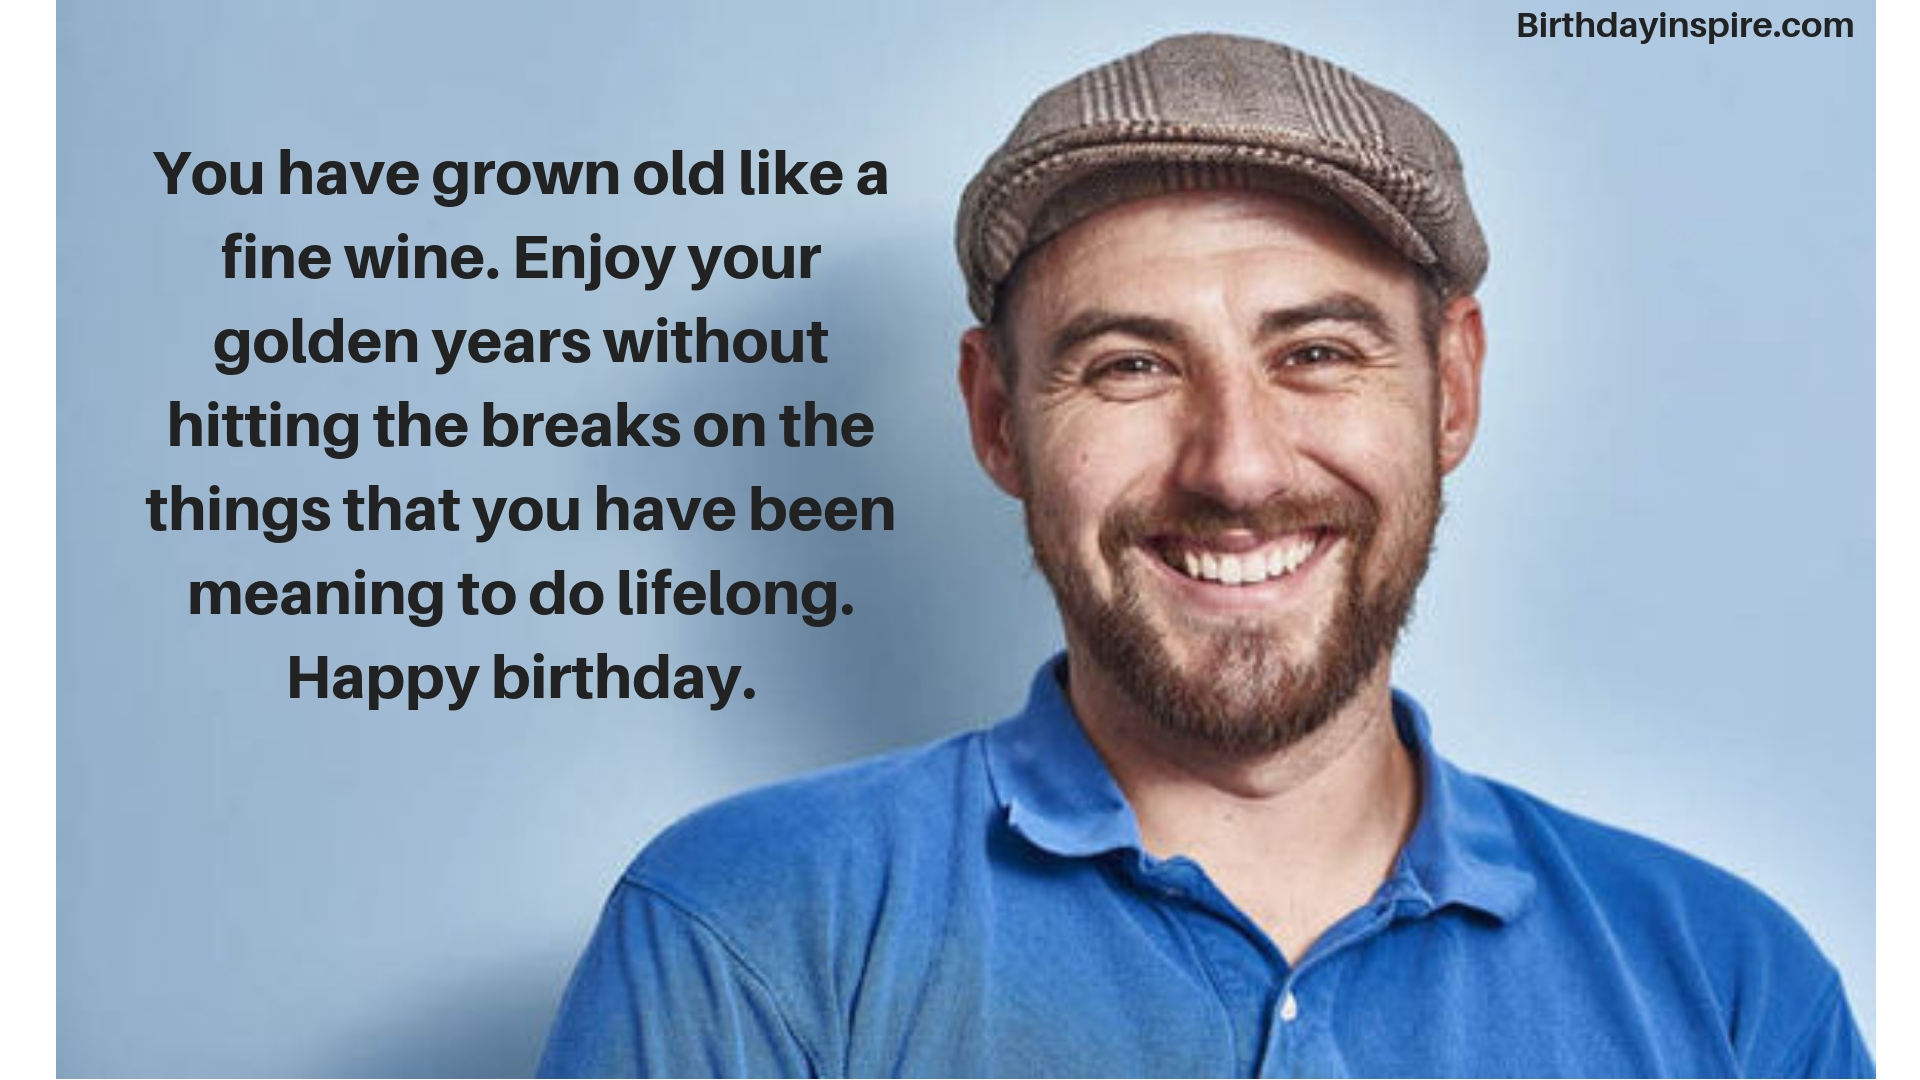 45 Hilarious 50th Birthday Quotes For MenBirthday Inspire